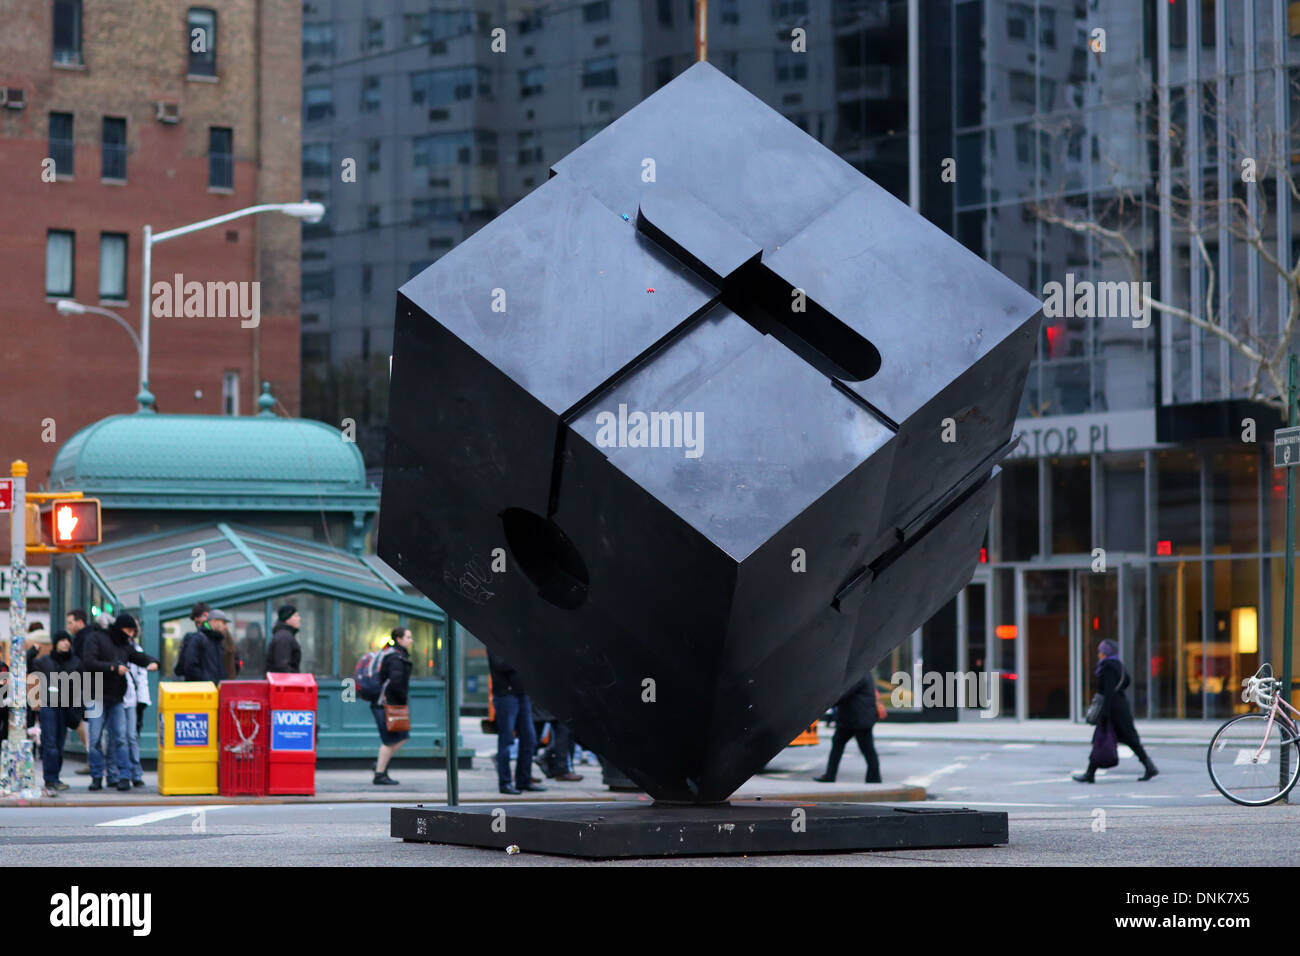 The Alamo, Cube sculpture in Astor Place, NYC. Stock Photo